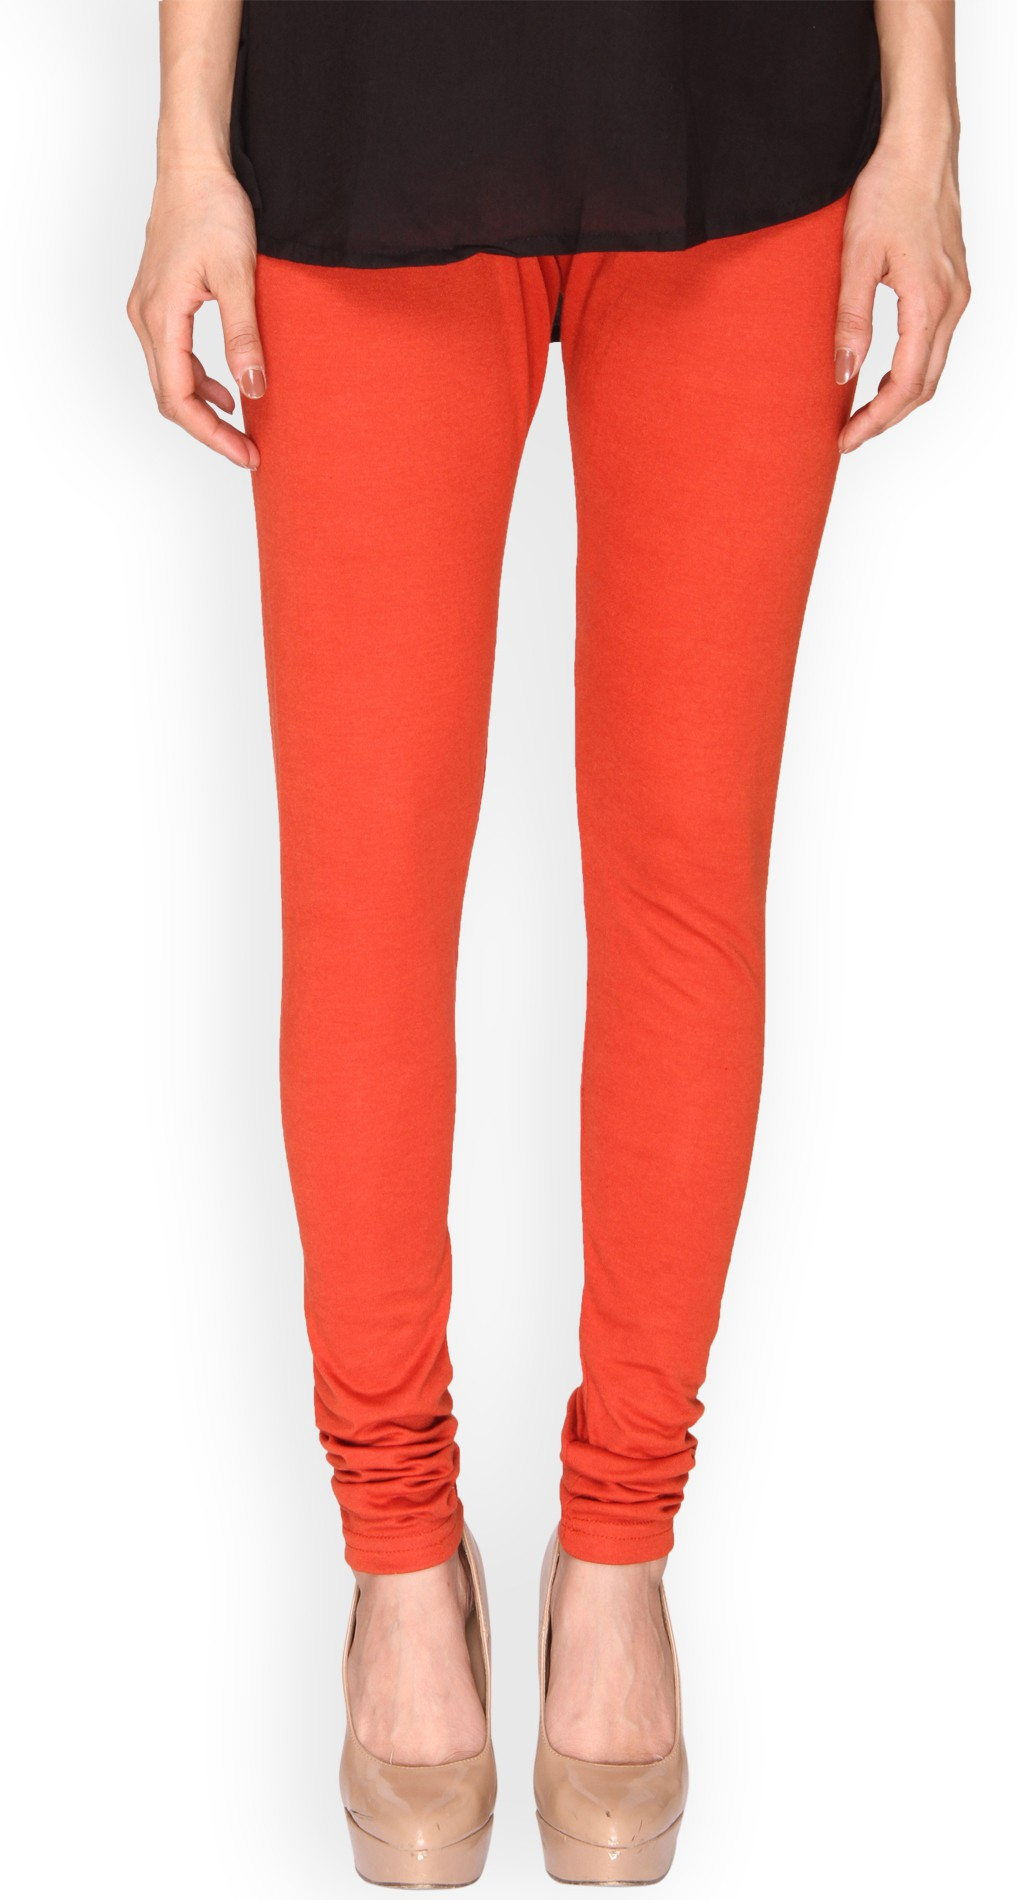 Ten on Ten Womens Orange Leggings